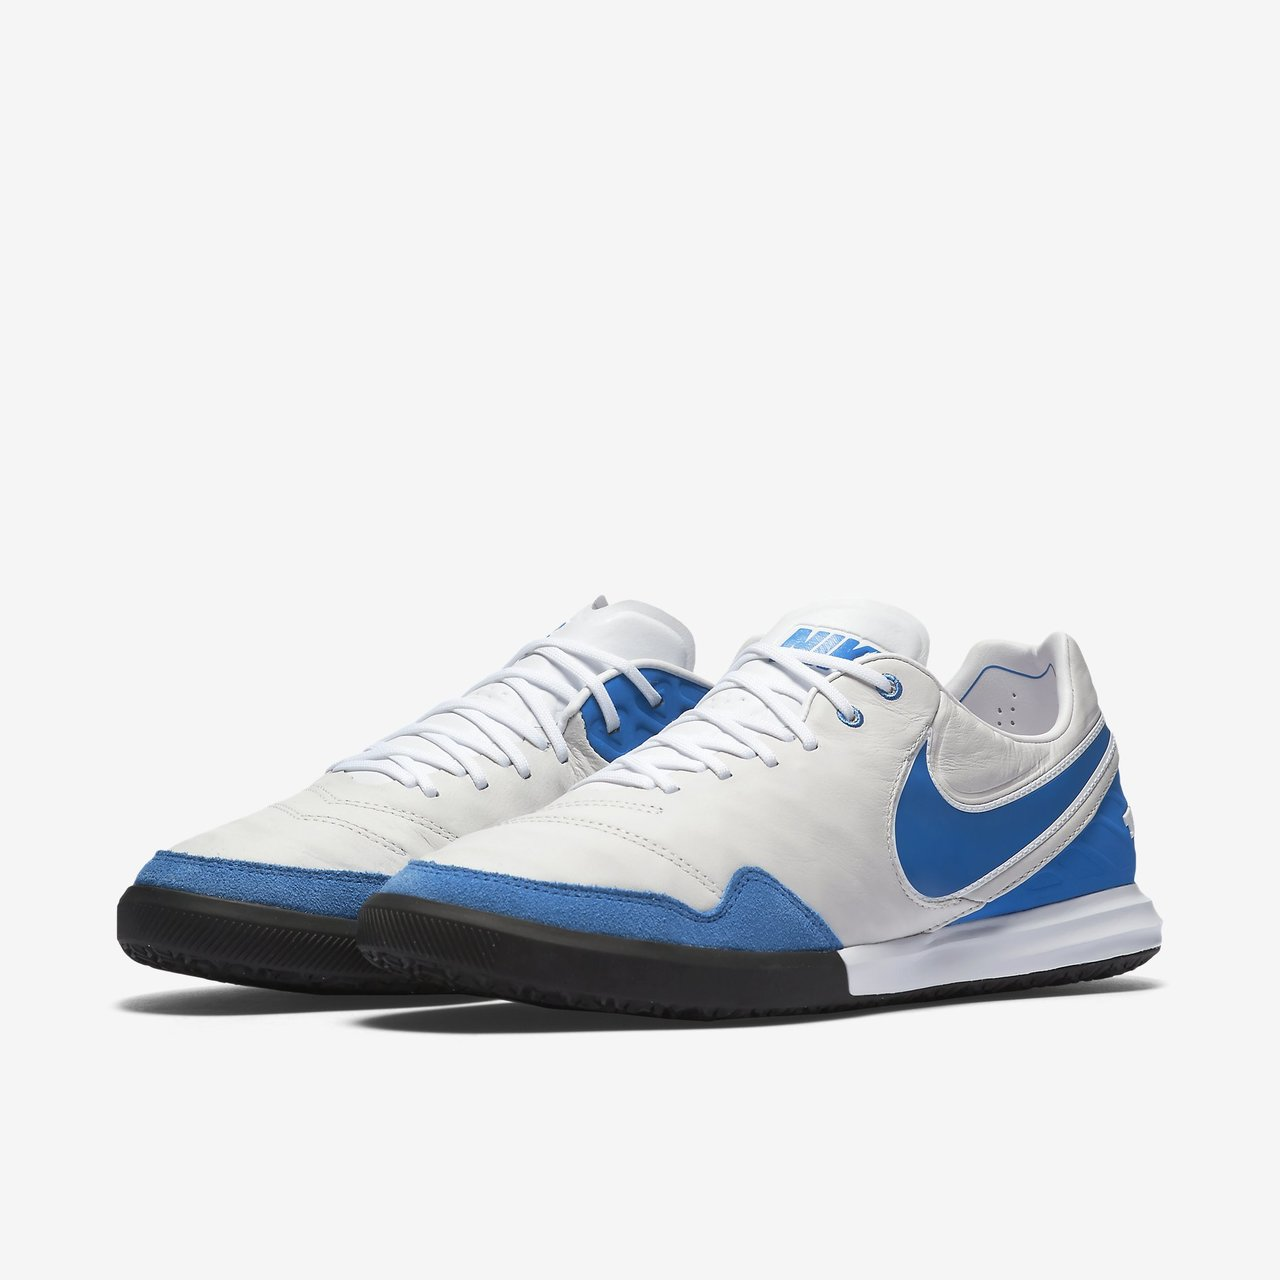 22402ac41 best chaussure de futsal nike tiempox proximo ic pure platinum electro  8943a 580d5; promo code click to enlarge image ...